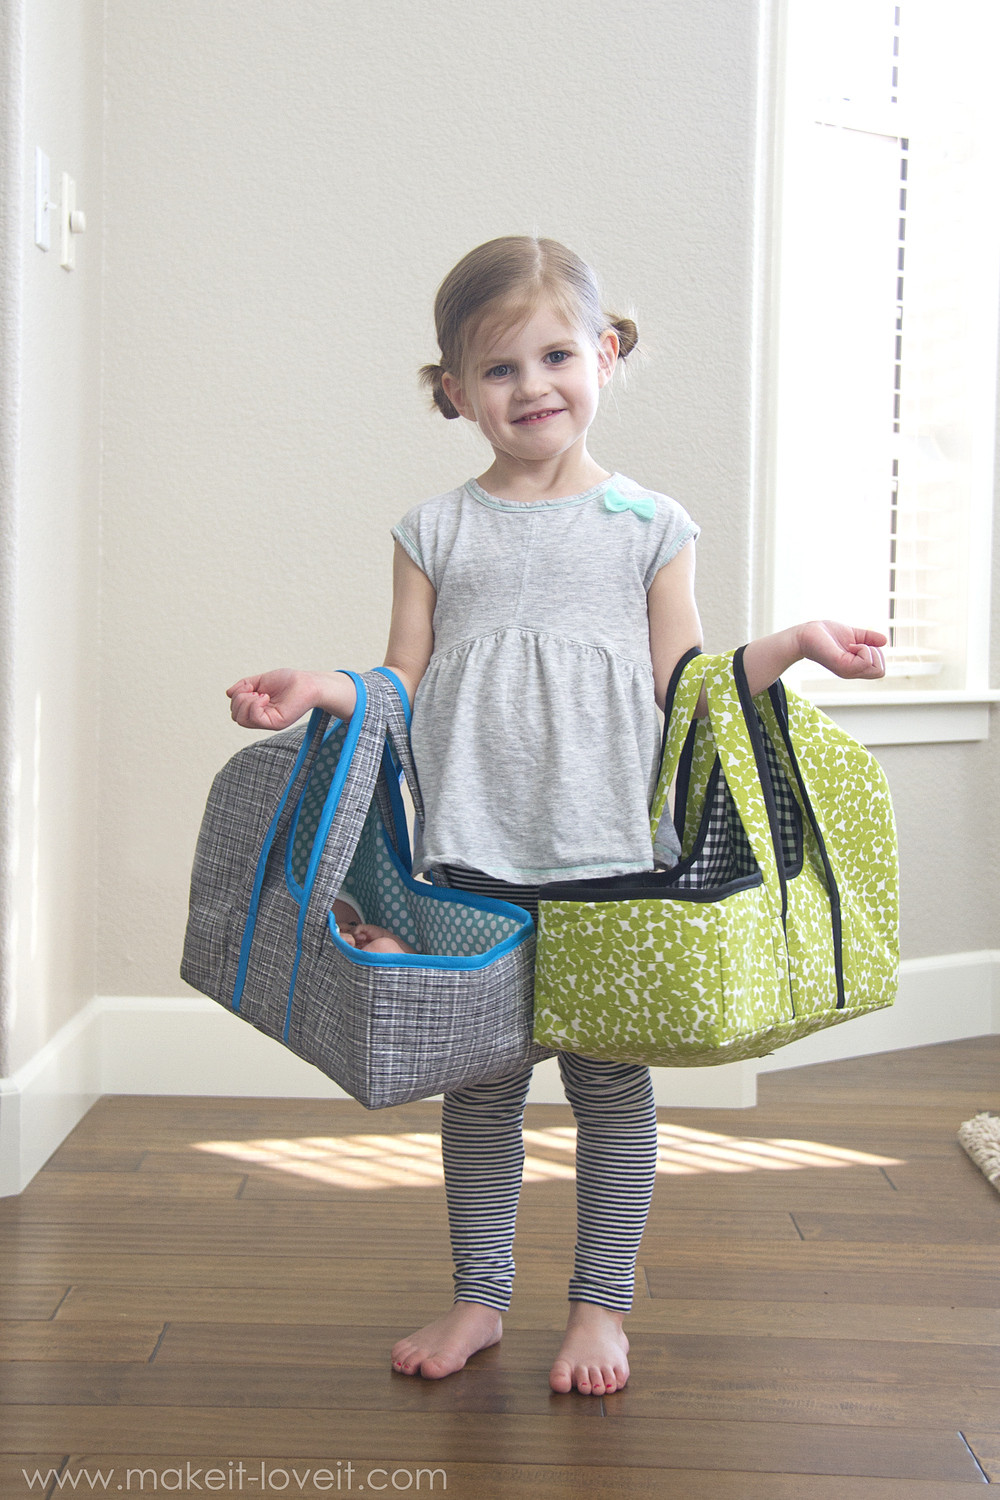 Best ideas about DIY Baby Carriers . Save or Pin Fabric Baby Doll Basket 3 patterns to GIVE AWAY Now.